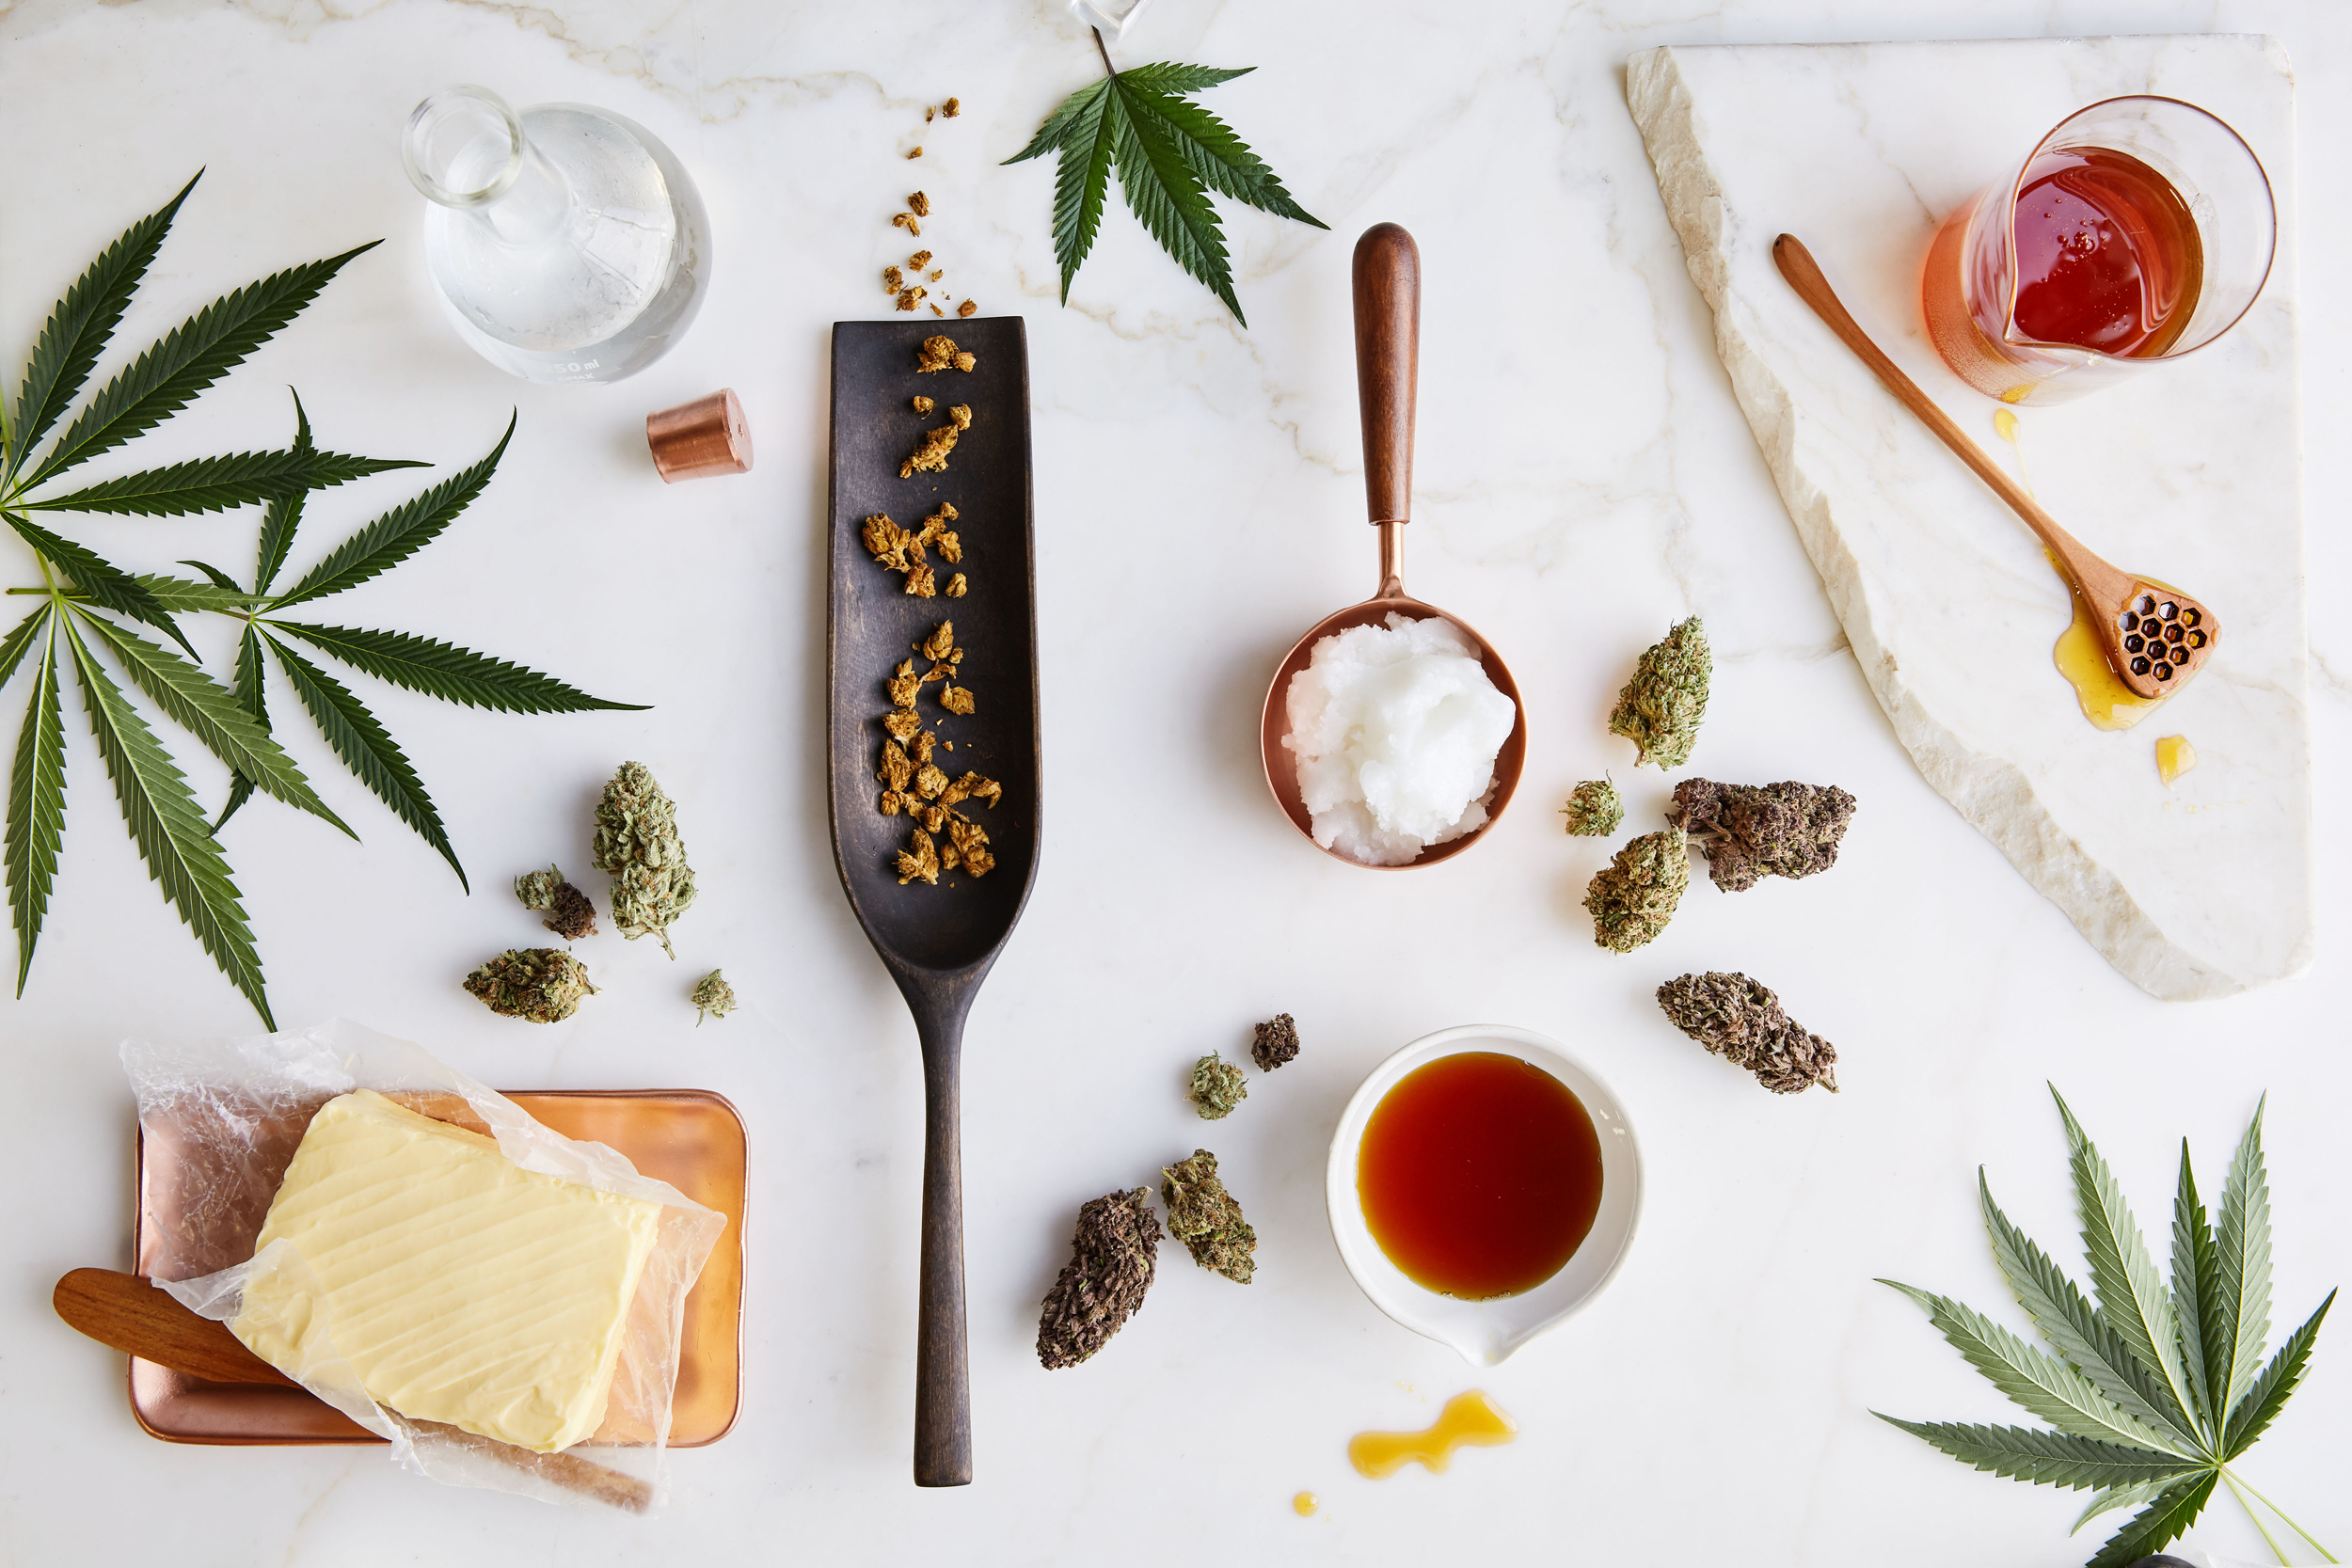 How to Get the Most out of Ingestible Marijuana?